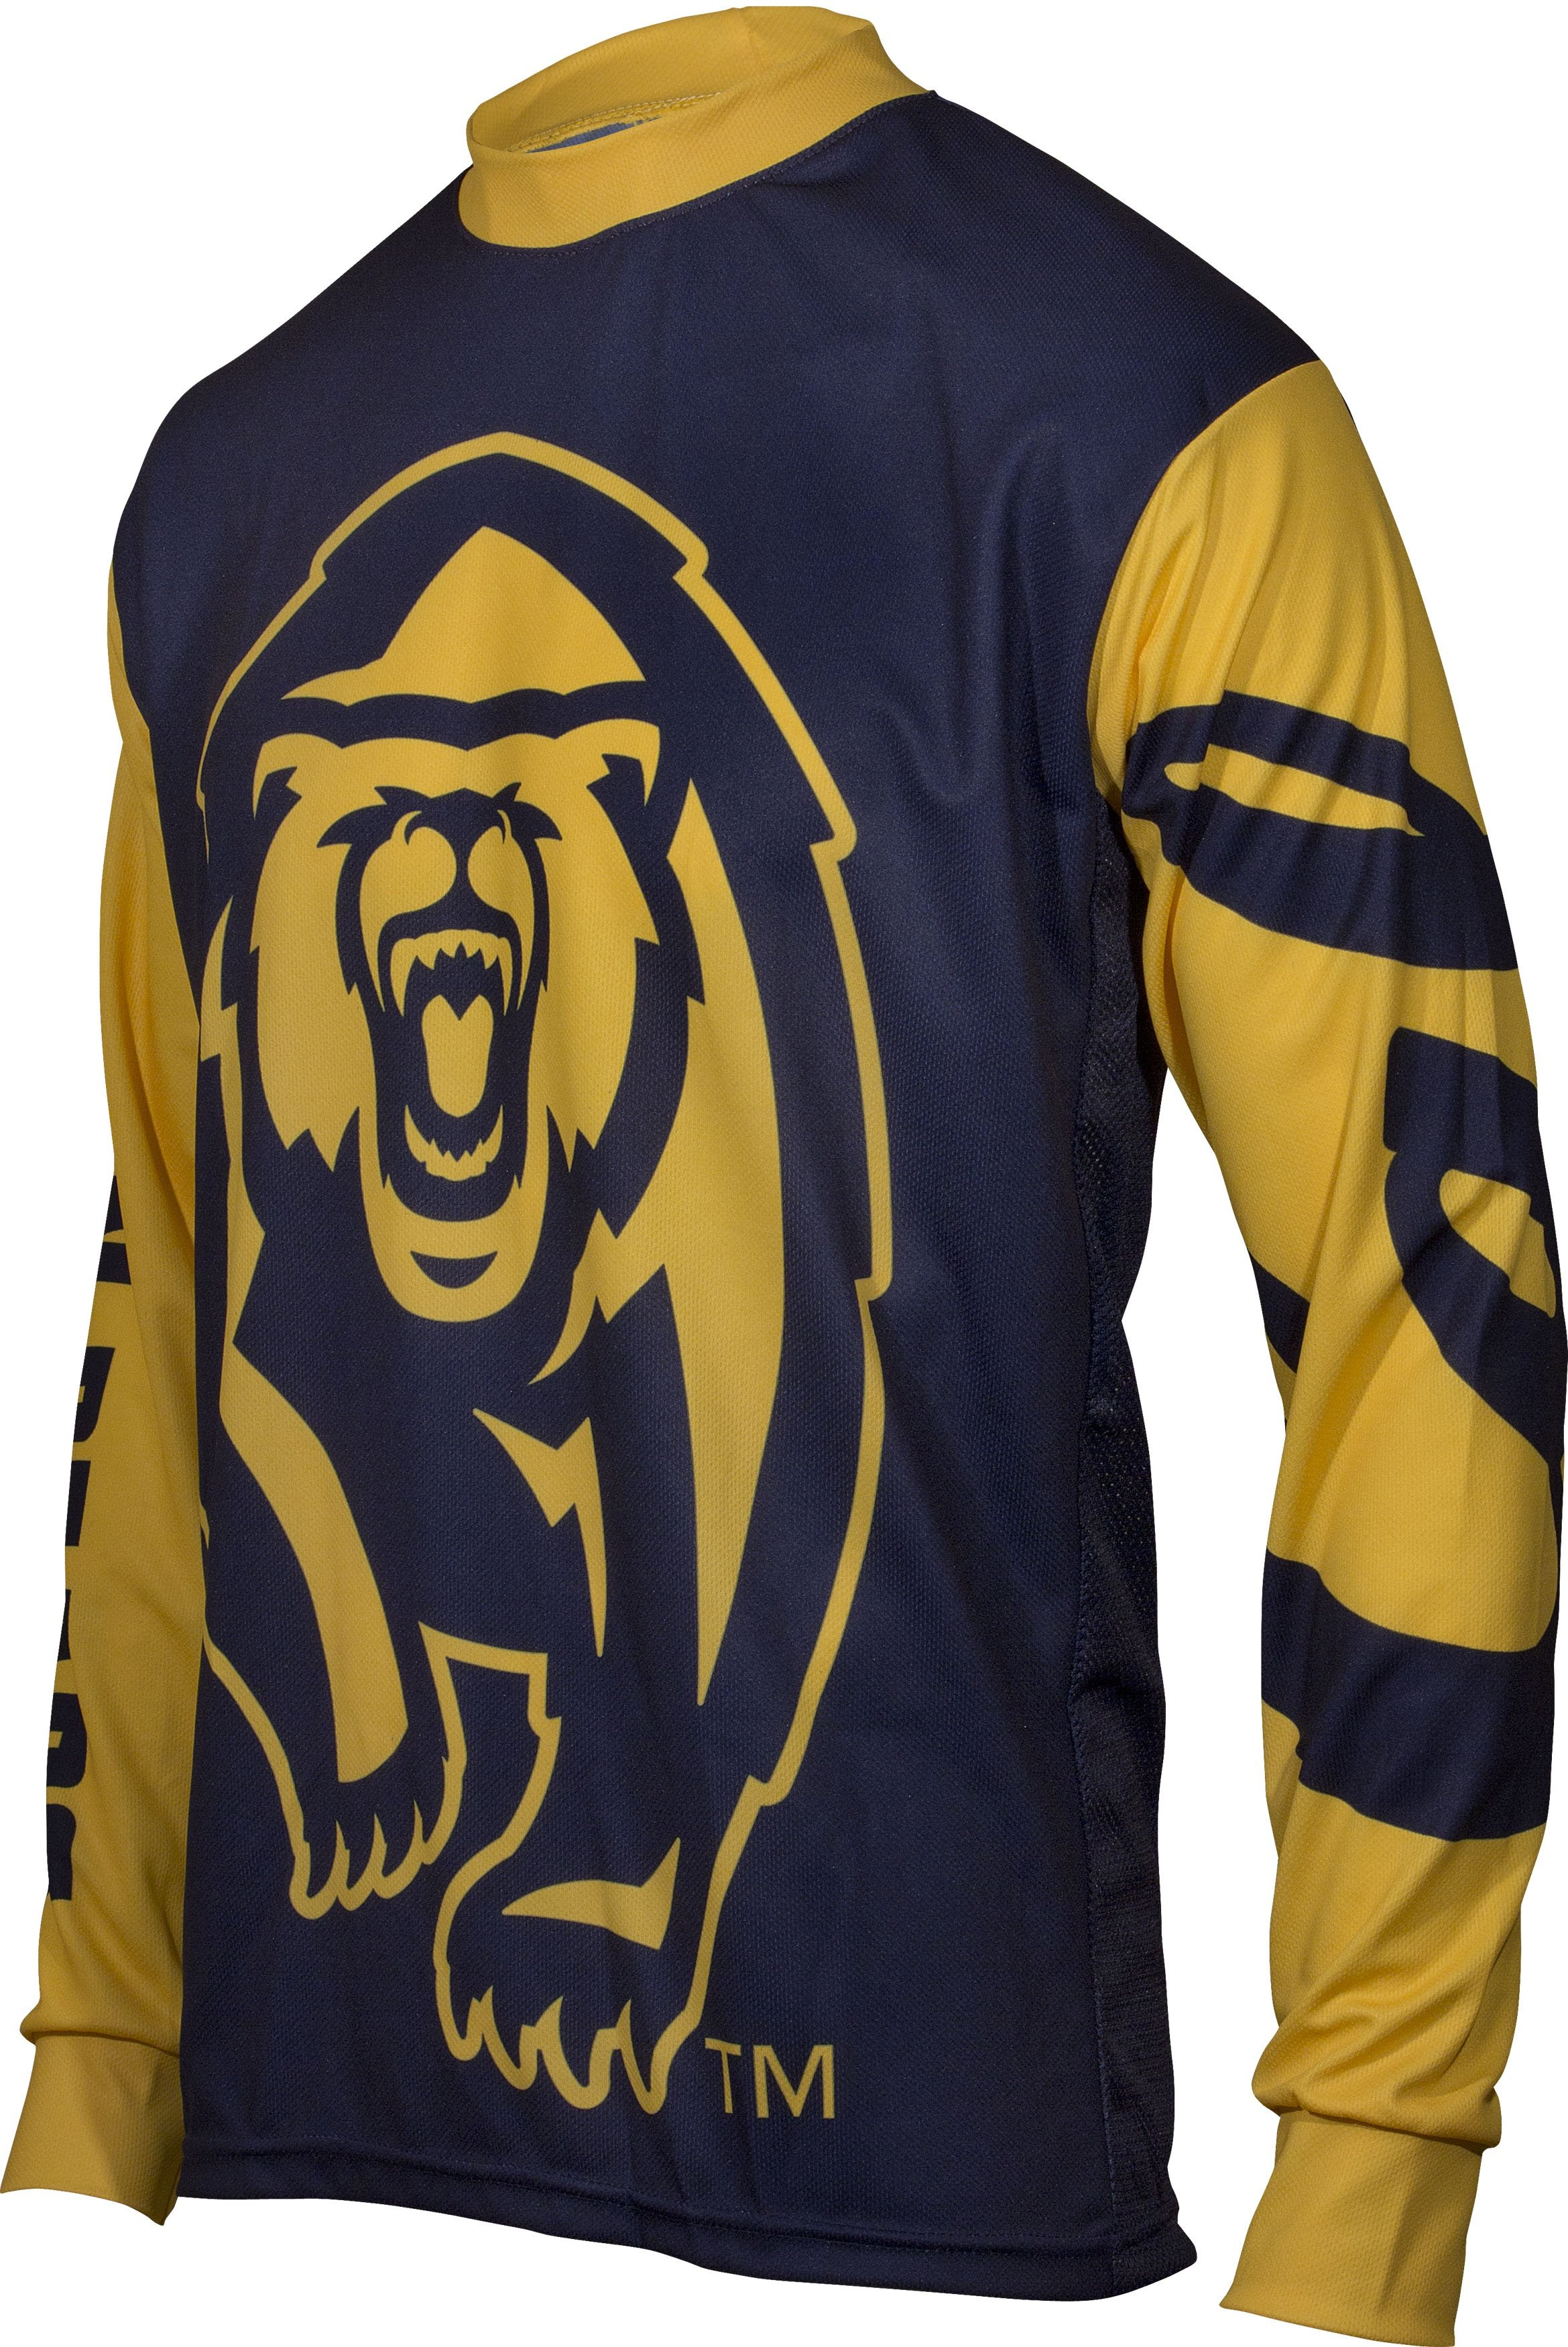 University of California Mountain Bike Cycling Jersey